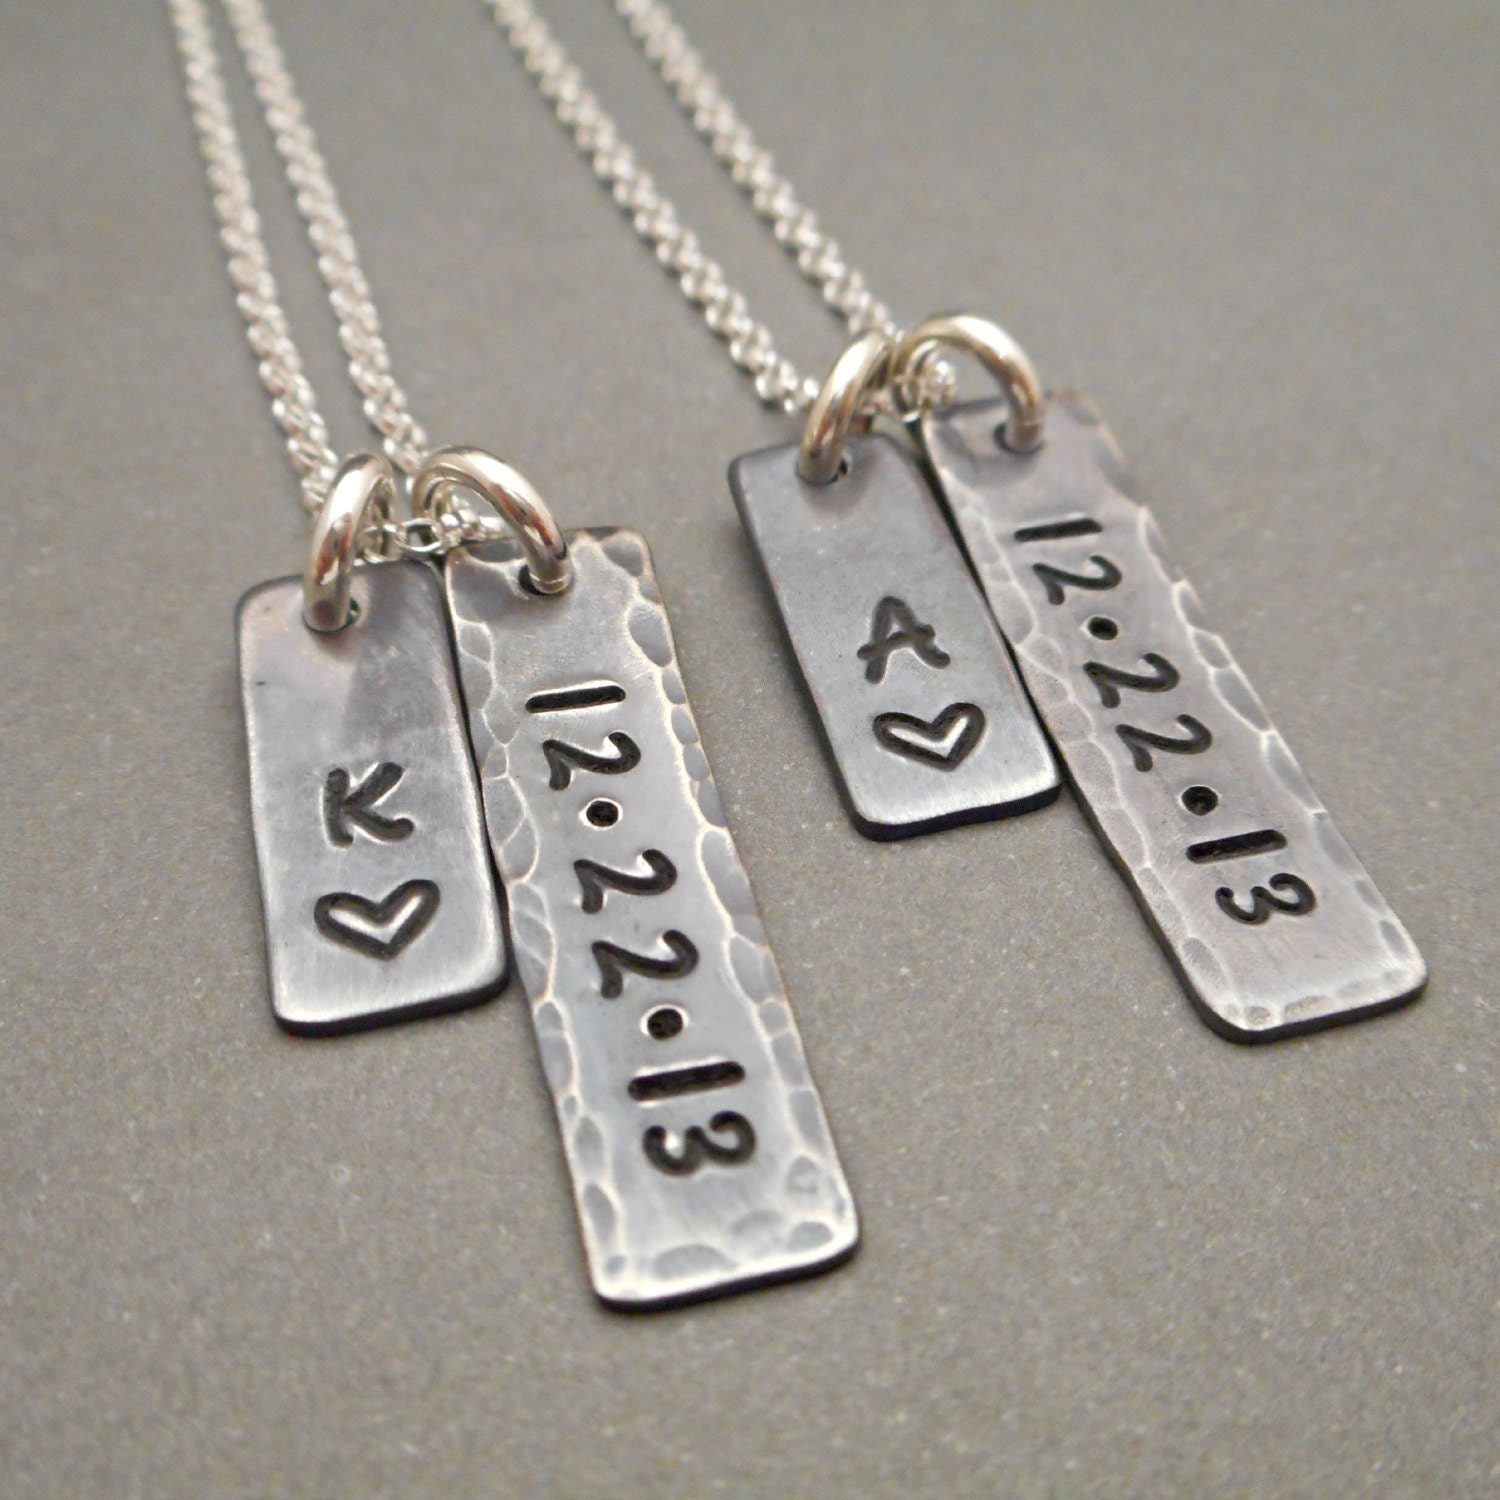 Personalized long distance his and hers his and hers jewelry